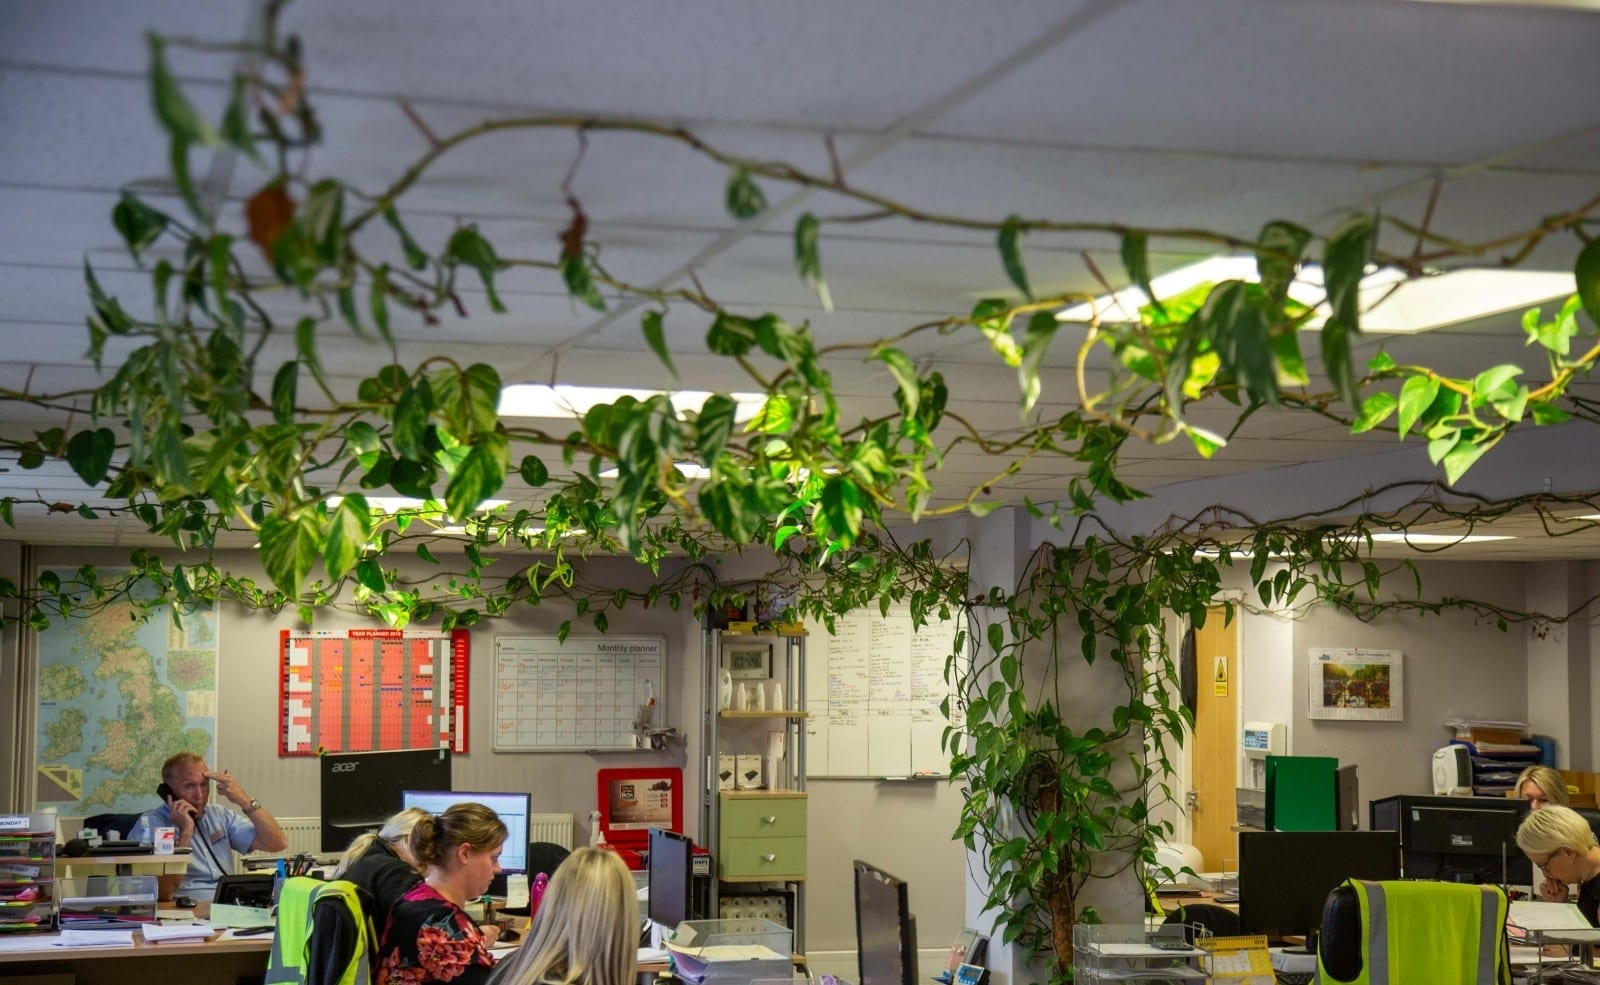 Small Plant Put In An Office Ten Years Ago Has Turned Into 300FT Monster – Filling The Entire Building